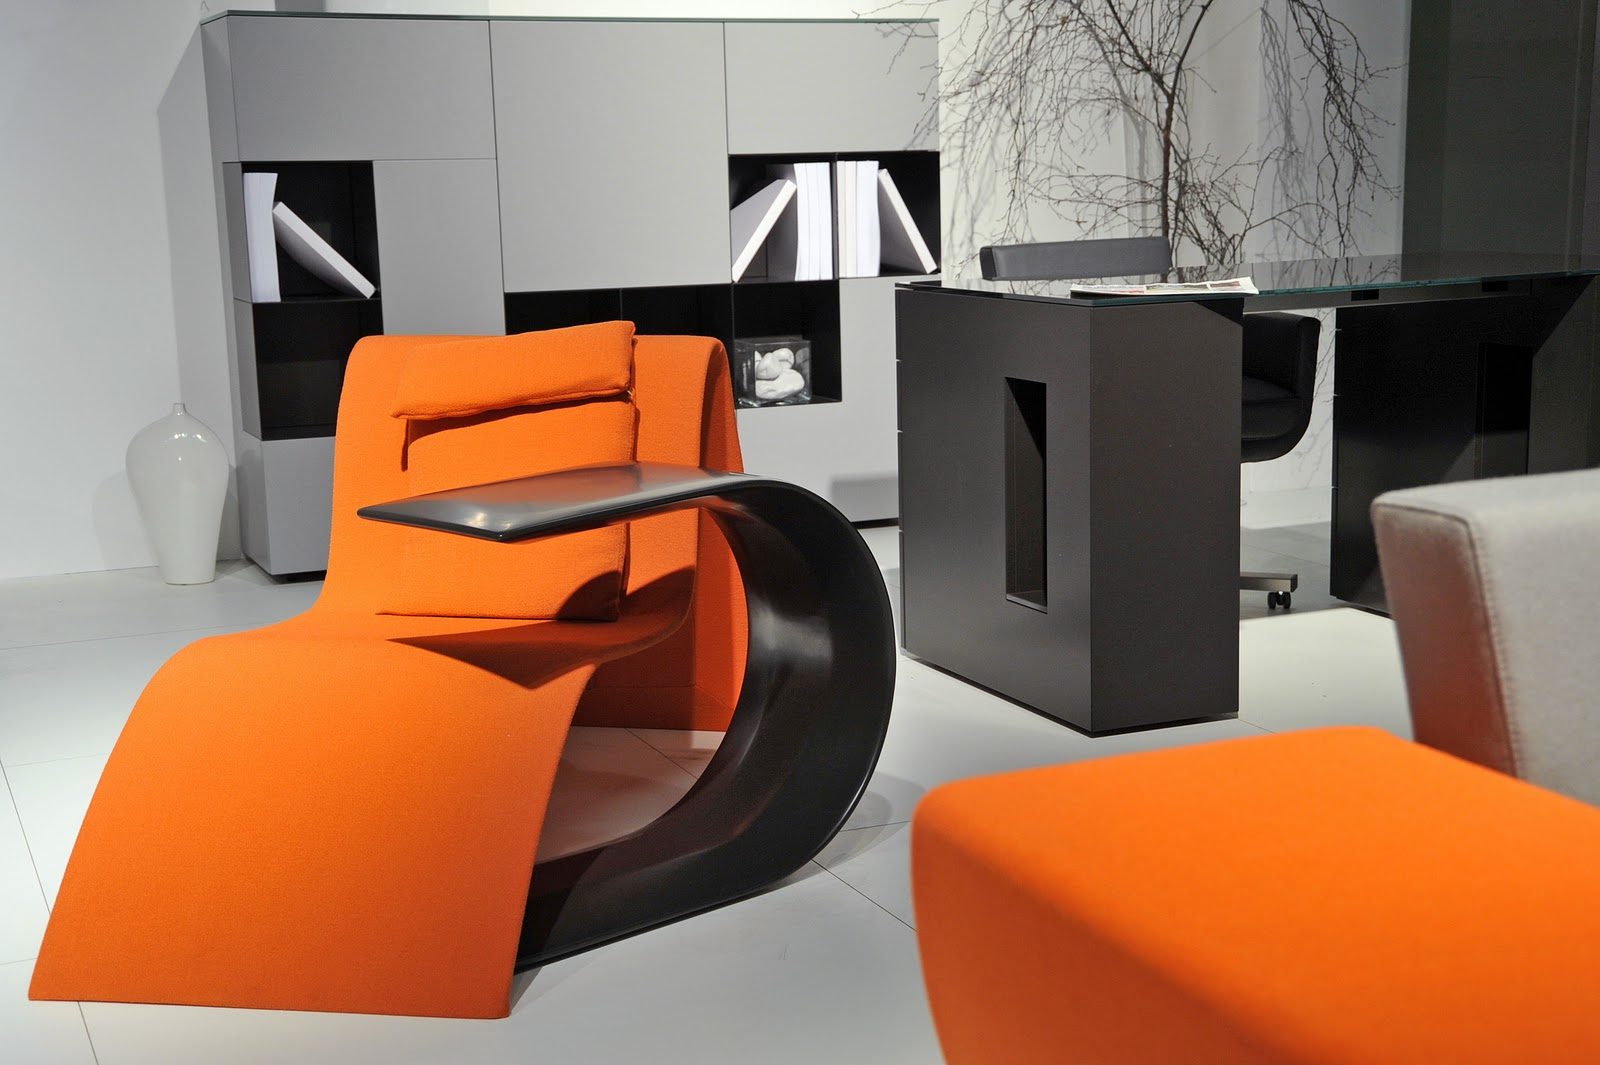 Gift Amp Home Today 1 16 11 1 23 11 Furniture Gifts